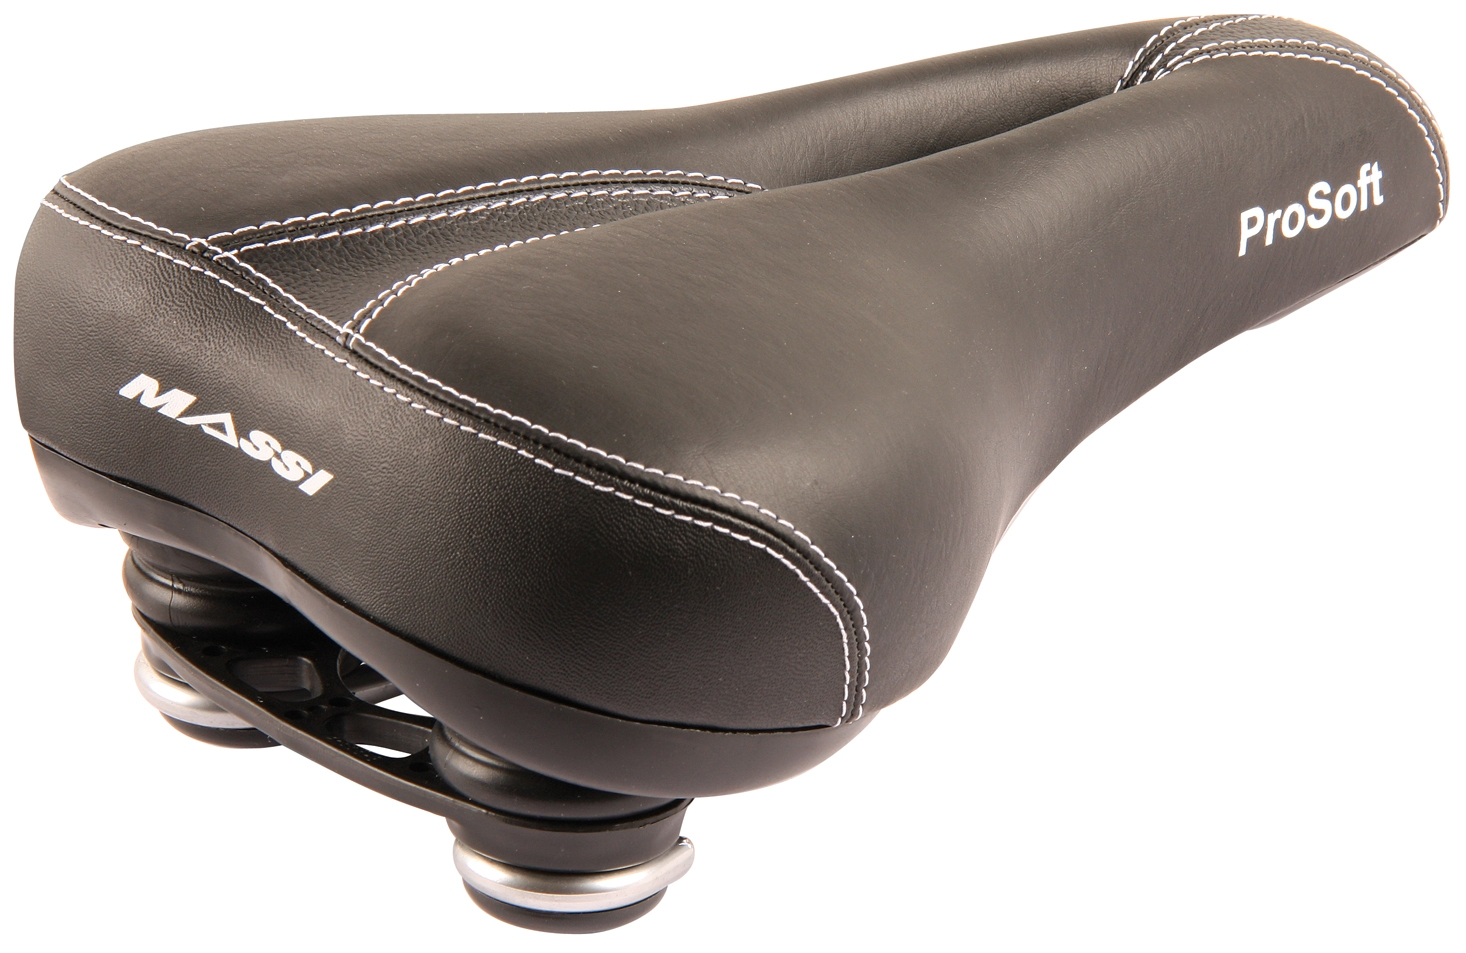 Selle Massi Prosoft Elastomer Marron